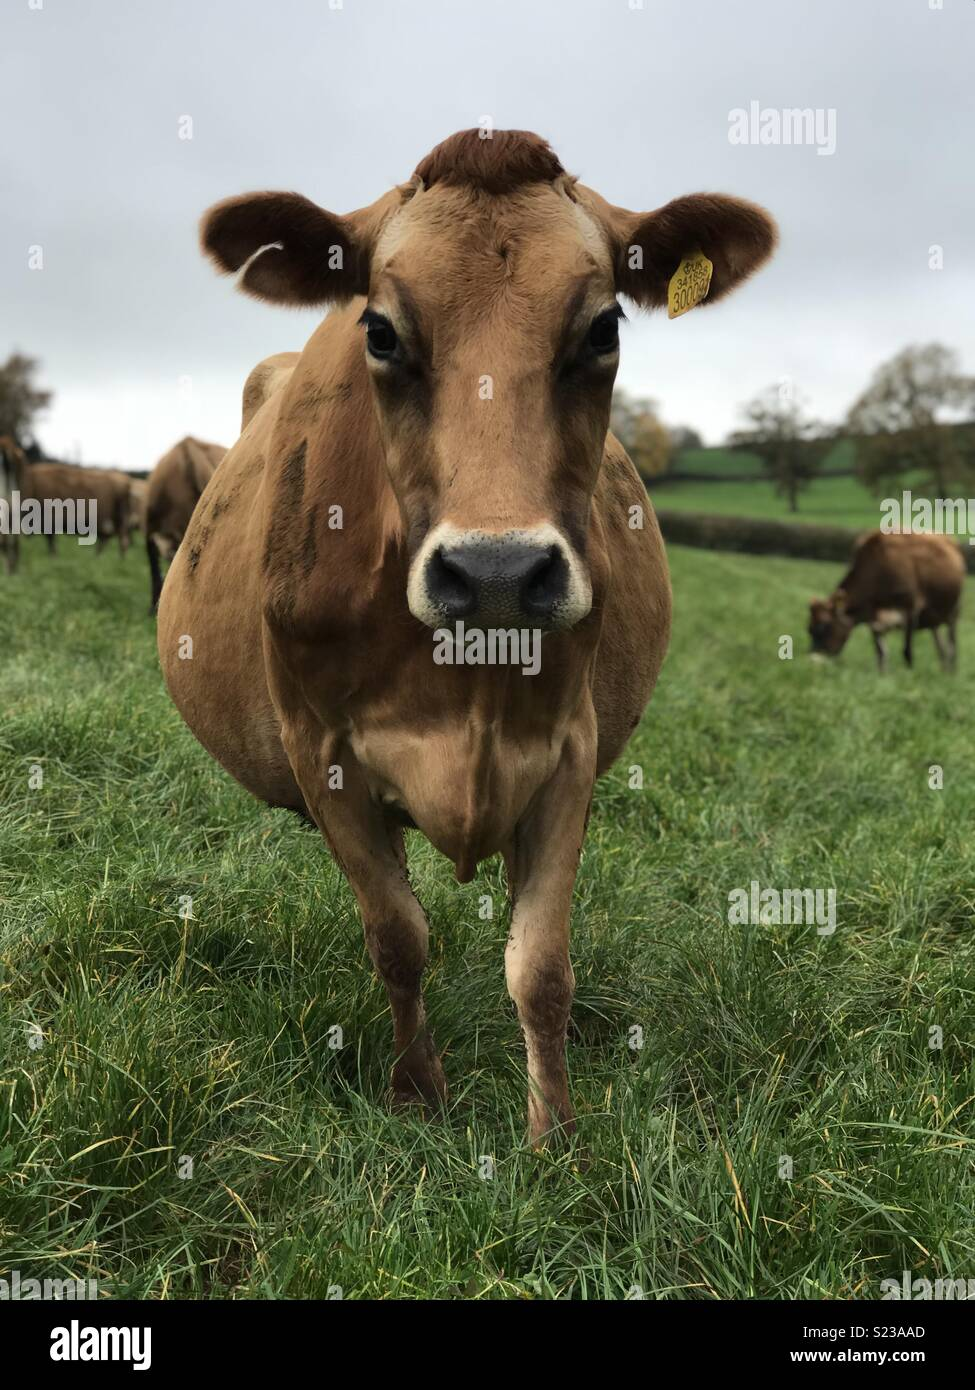 Jersey cow - Stock Image